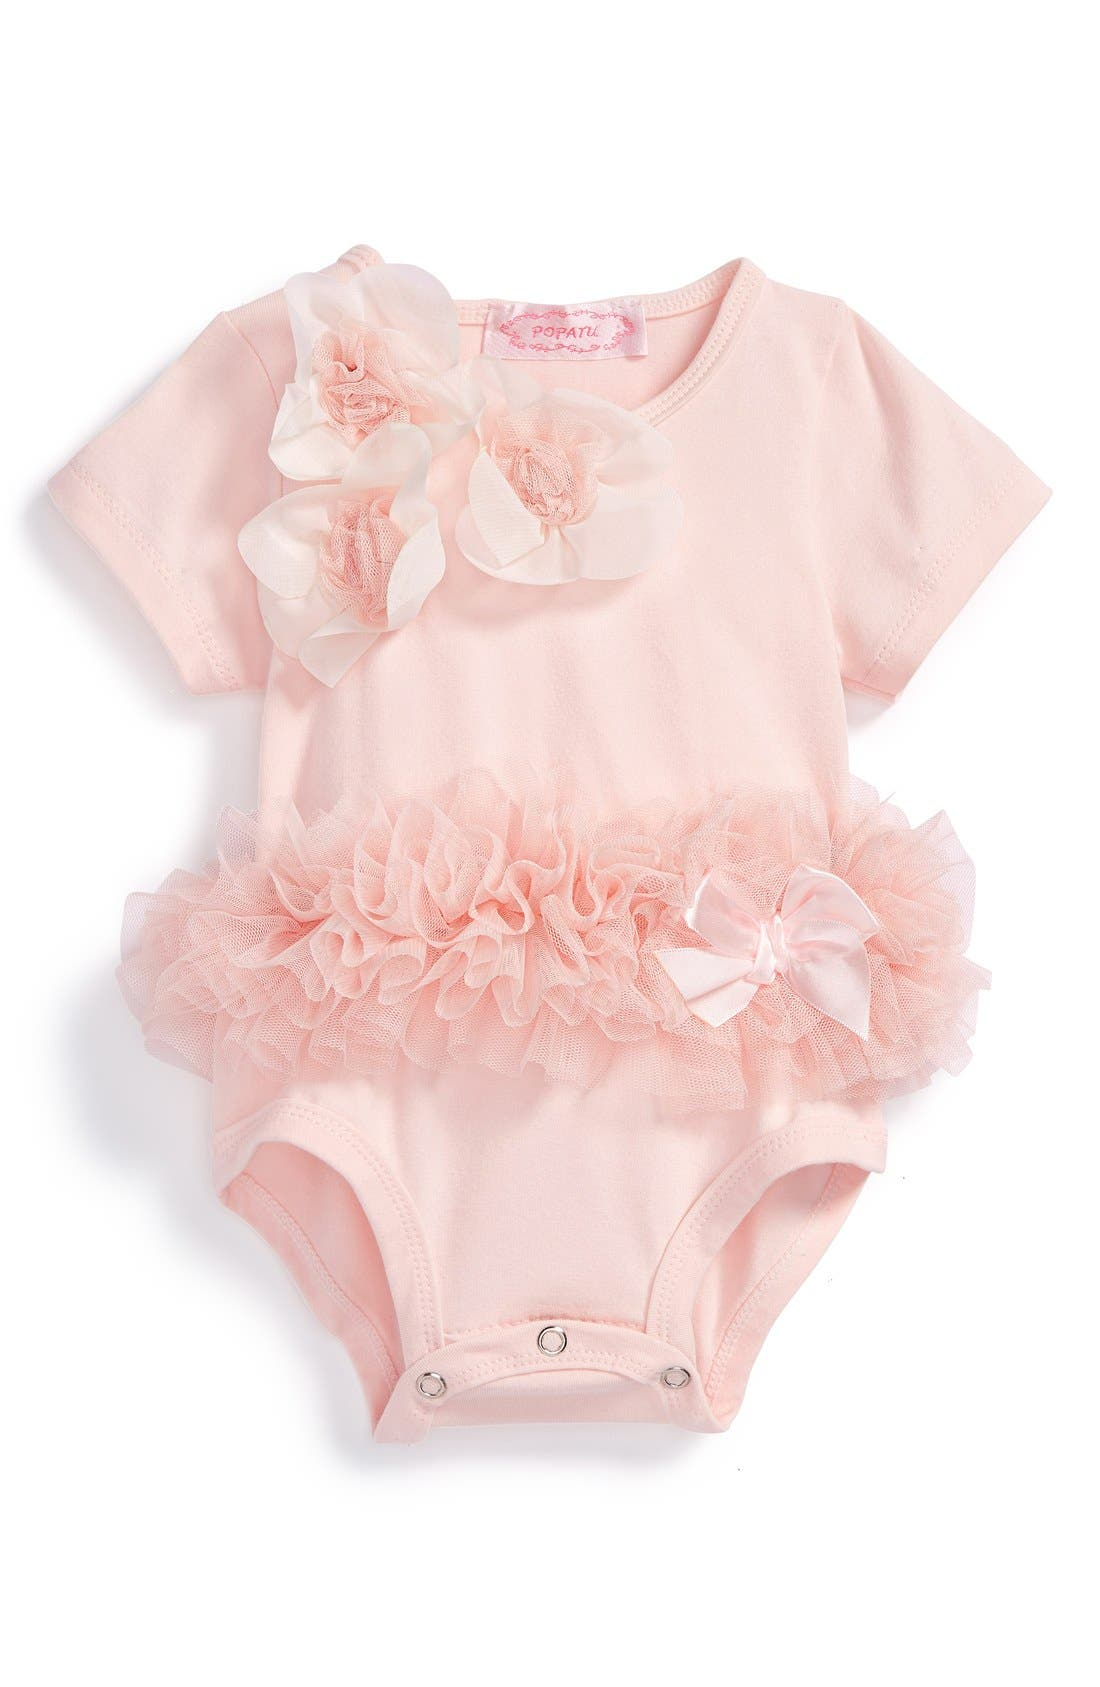 Alternate Image 1 Selected - Popatu Floral Tutu Bodysuit (Baby Girls)